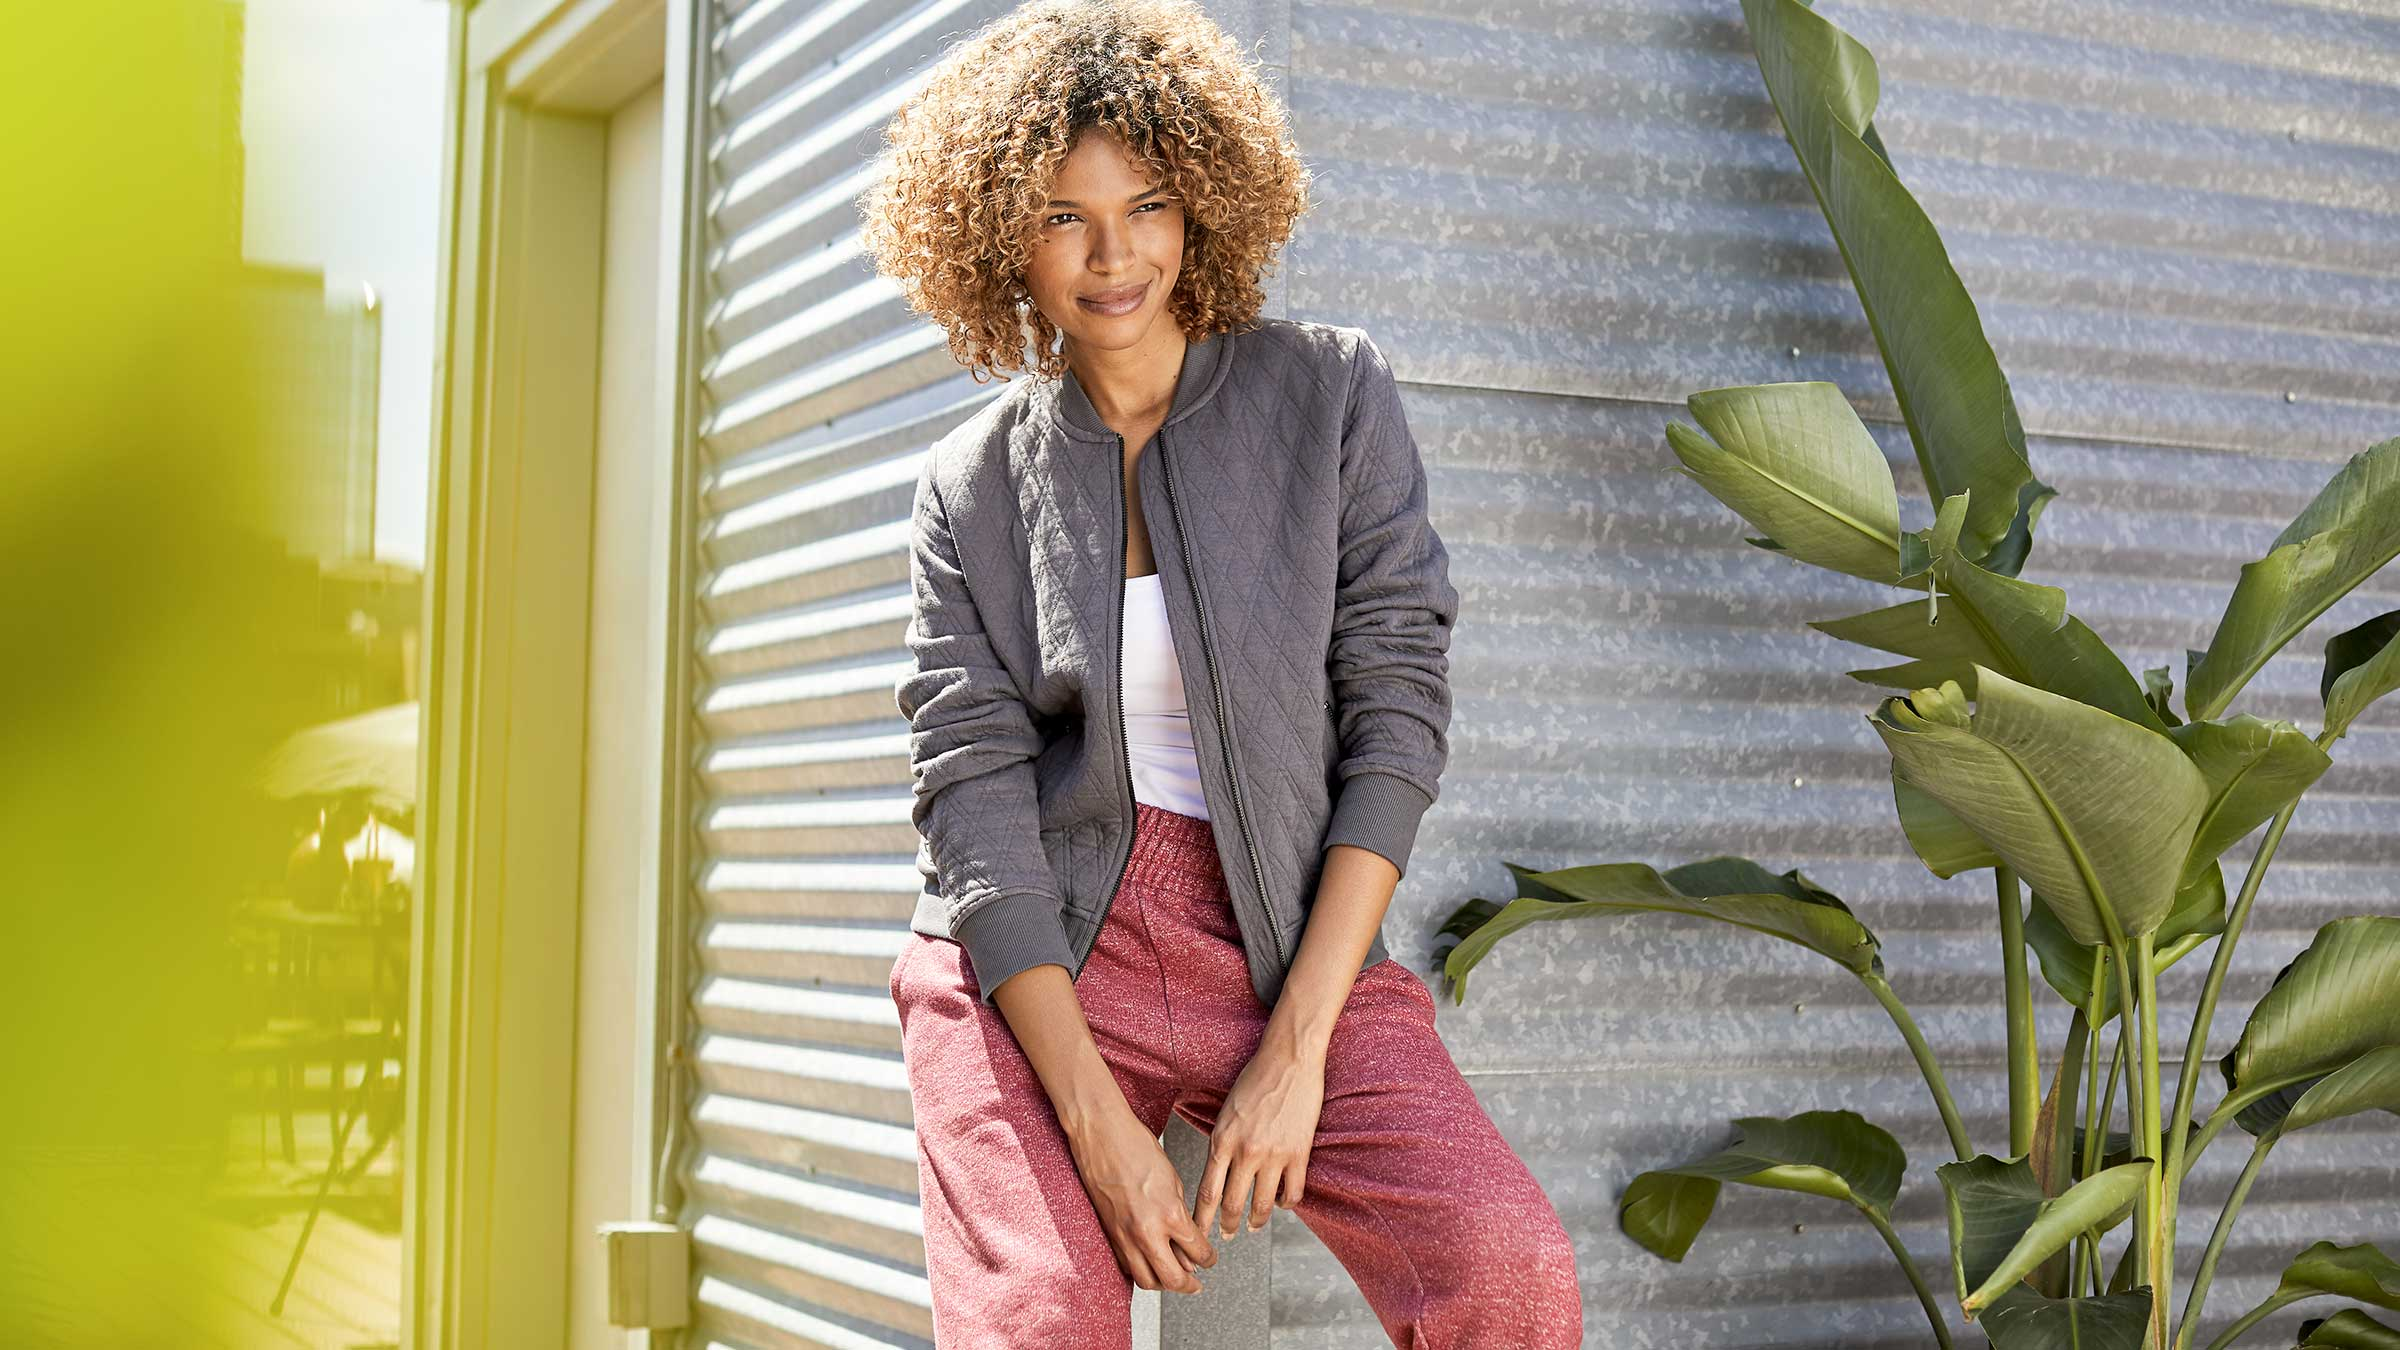 d8e1ef47 Comfy Clothing made with Organic Cotton | Pact